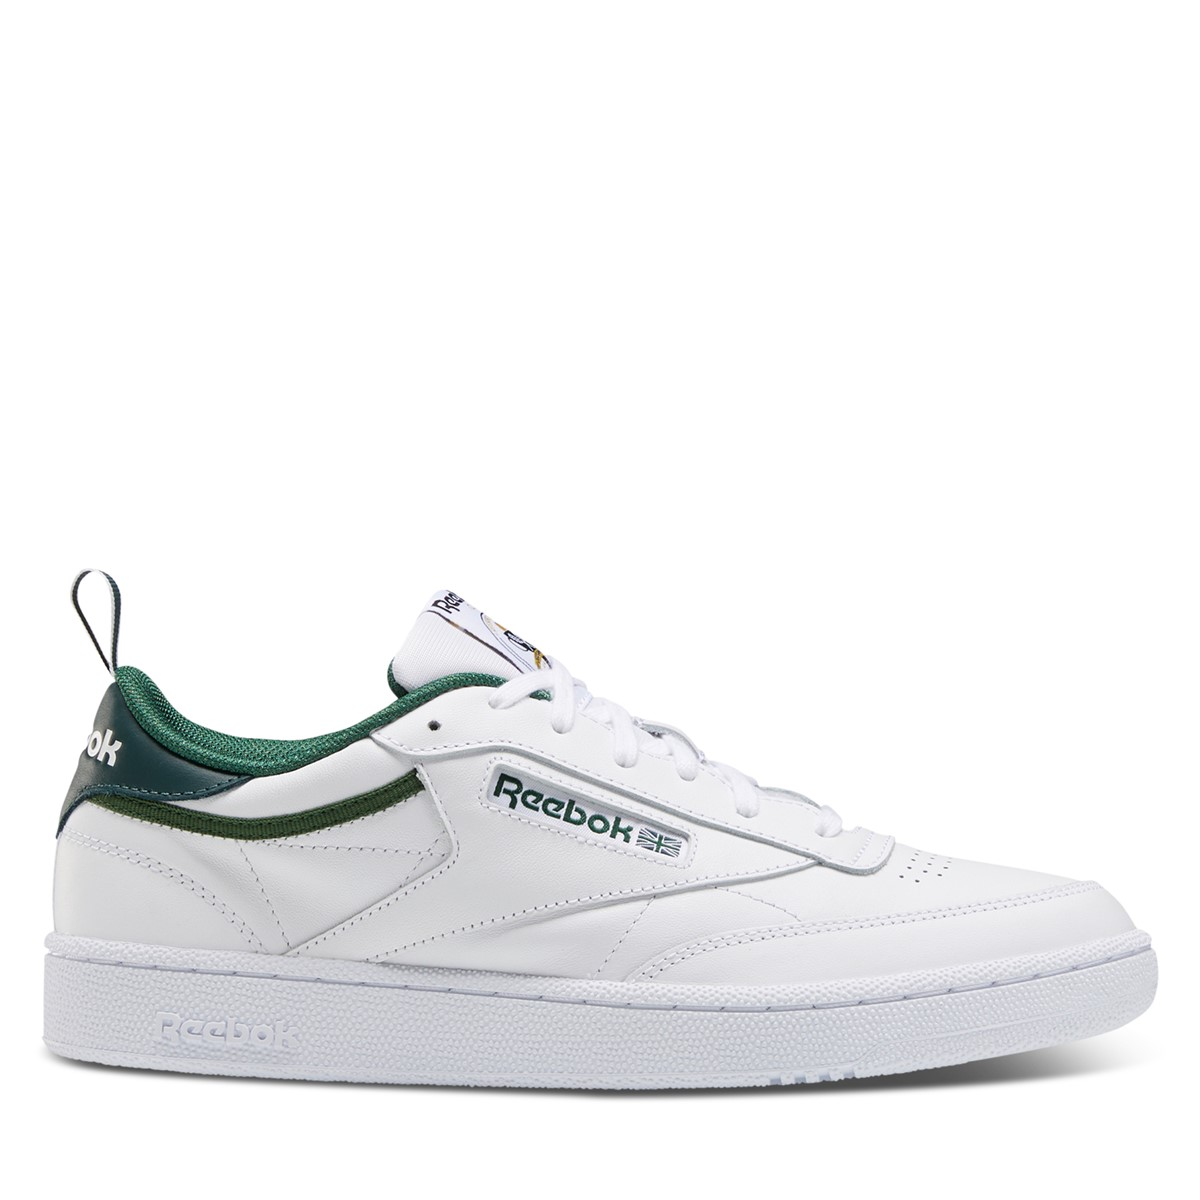 Men's Club C 35th Anniversary Sneakers in White/Green